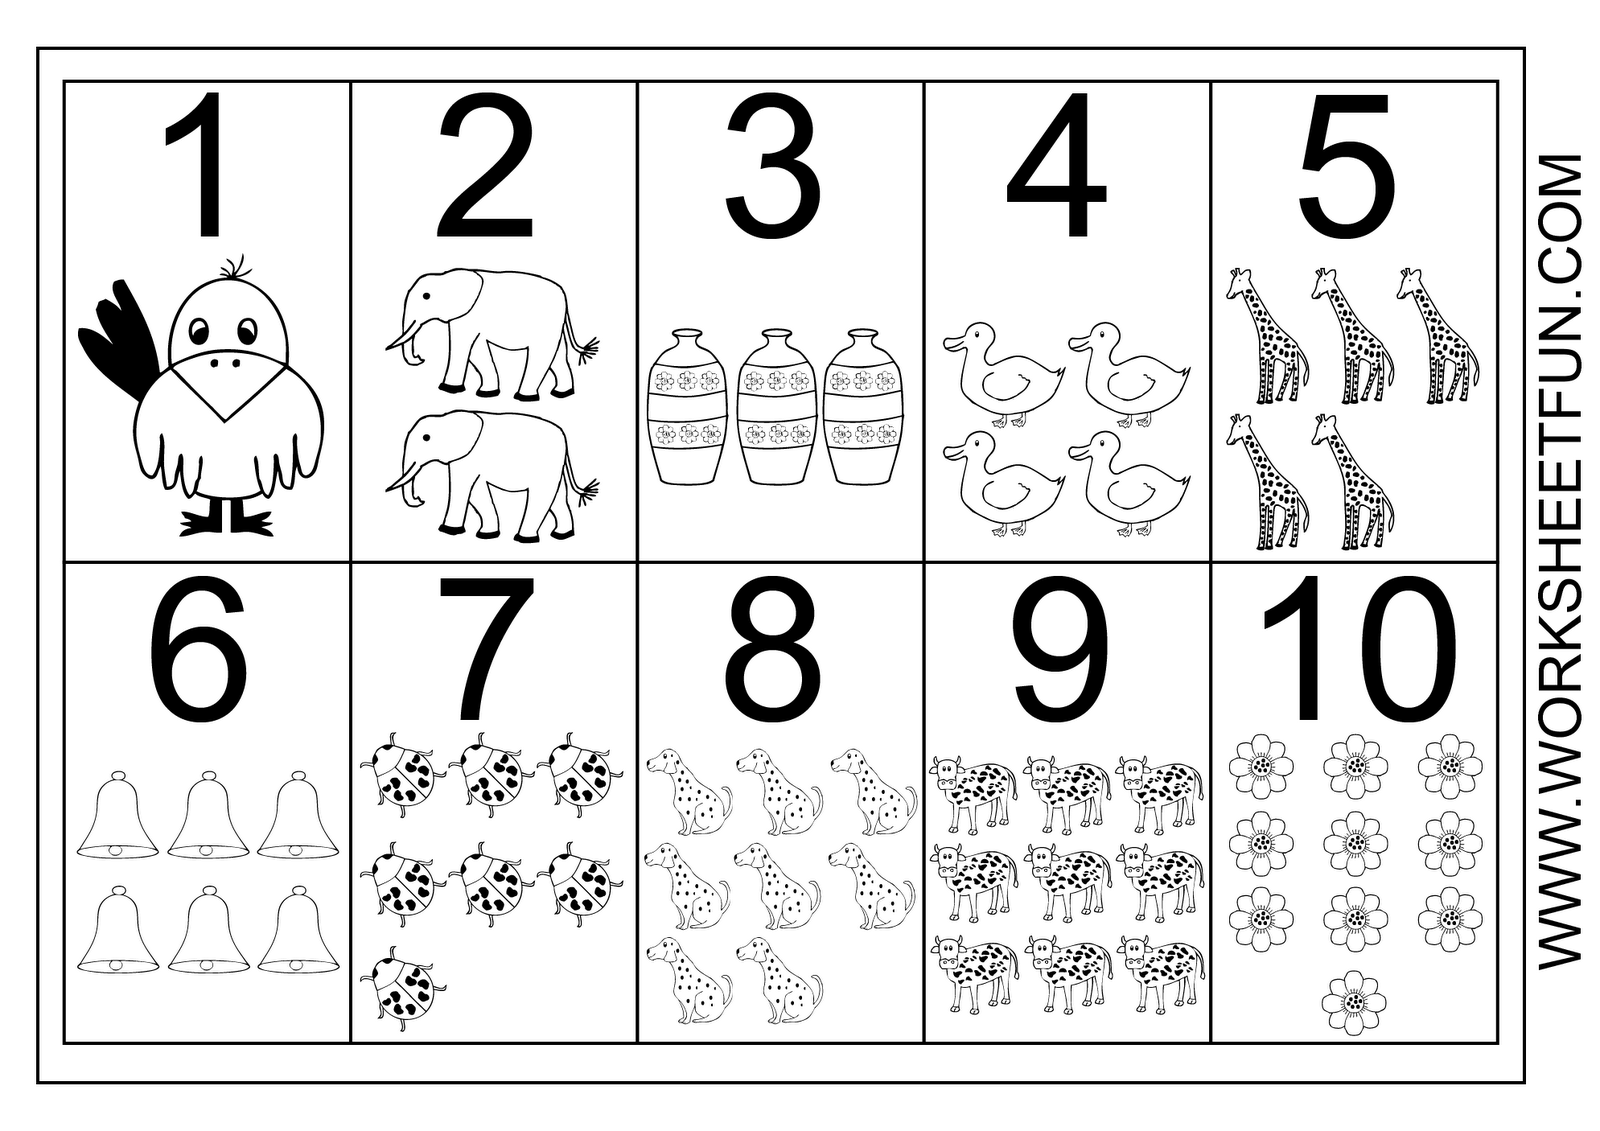 Printable Numbers Flashcards